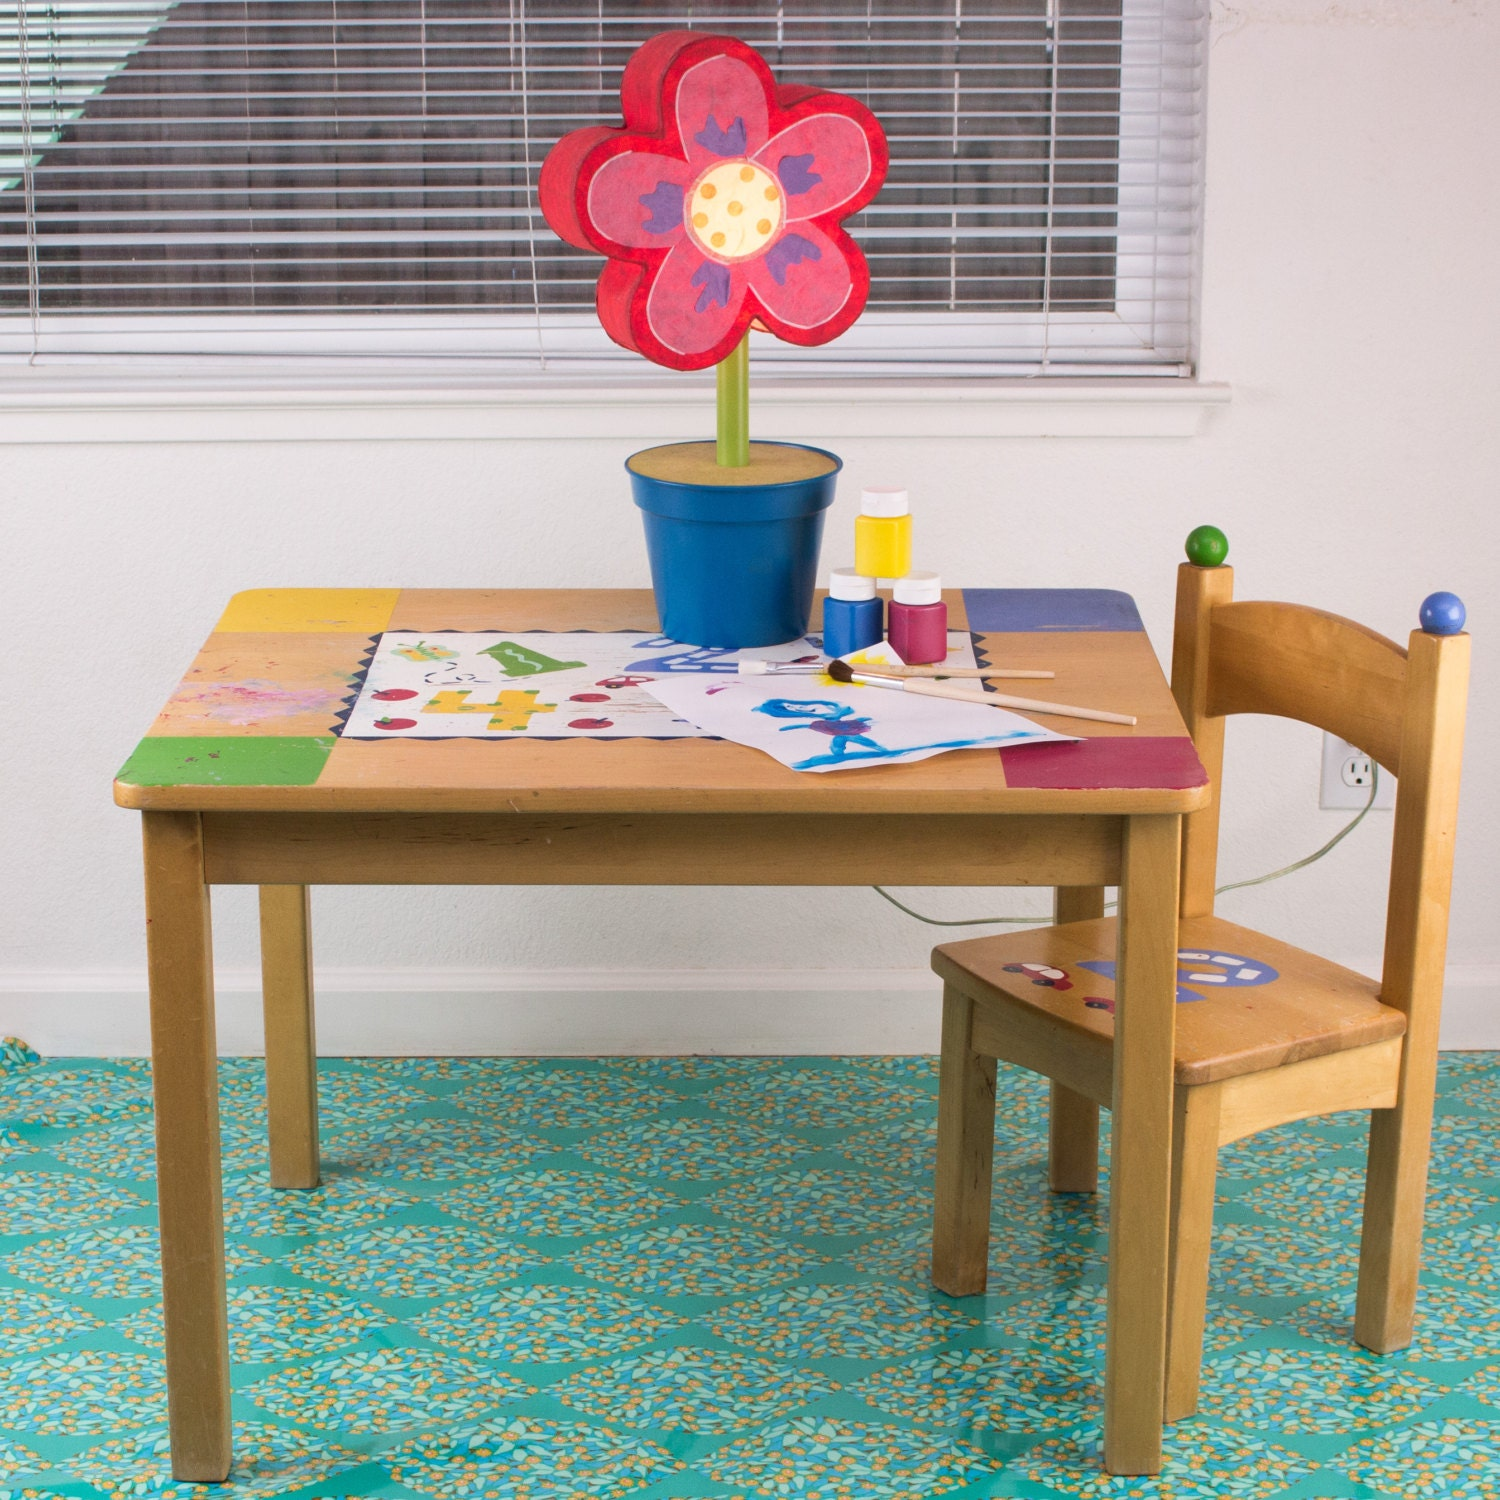 14 under high chair splat mat splat mat tablecloth cinnamon